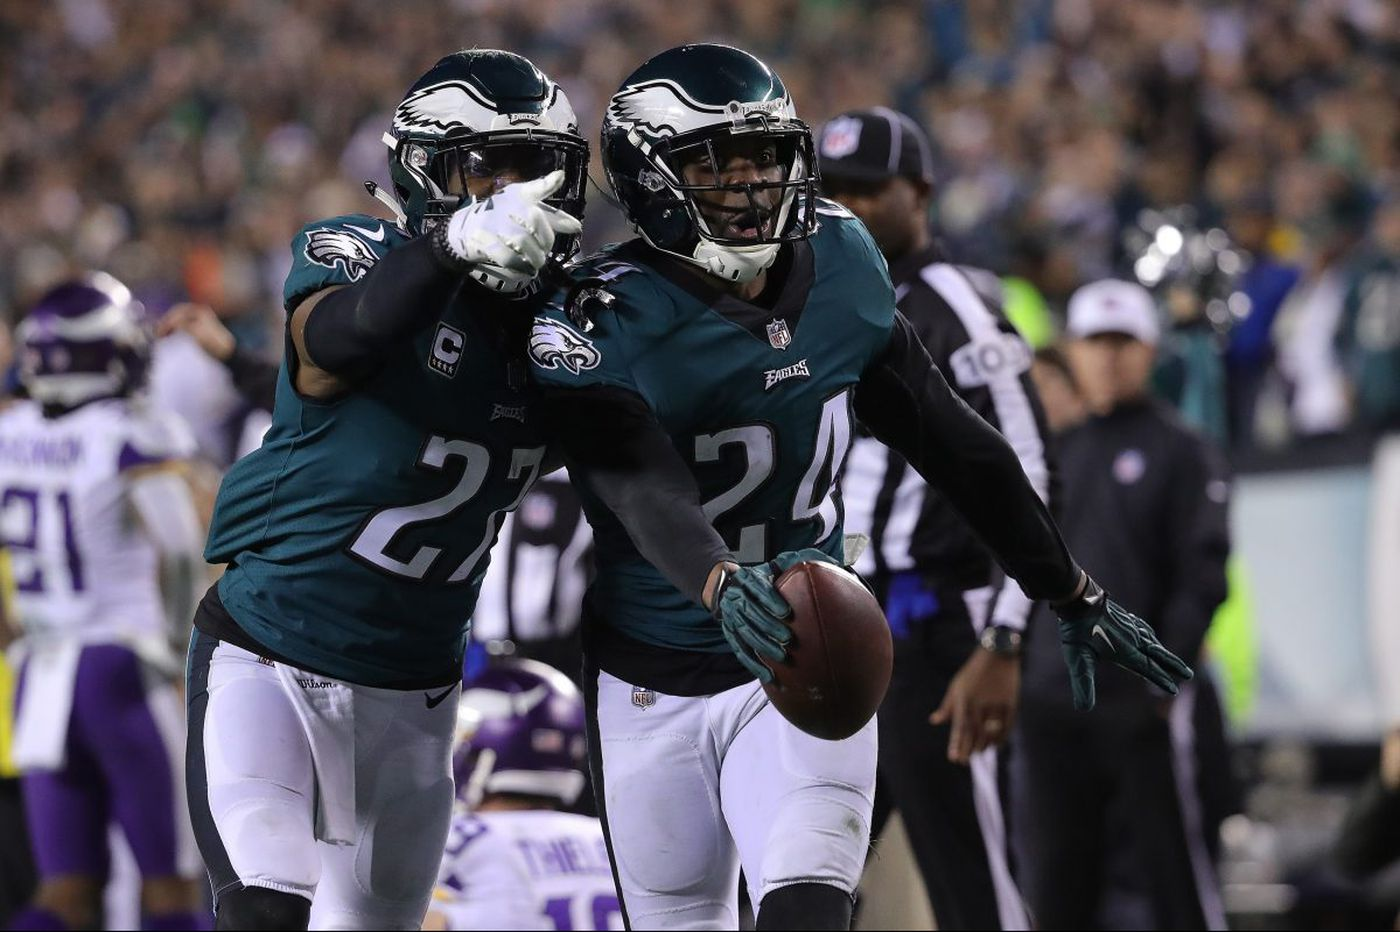 Super Bowl 2018: Eagles-Patriots point spread, kickoff time, TV channel, streaming options, referee info, etc.